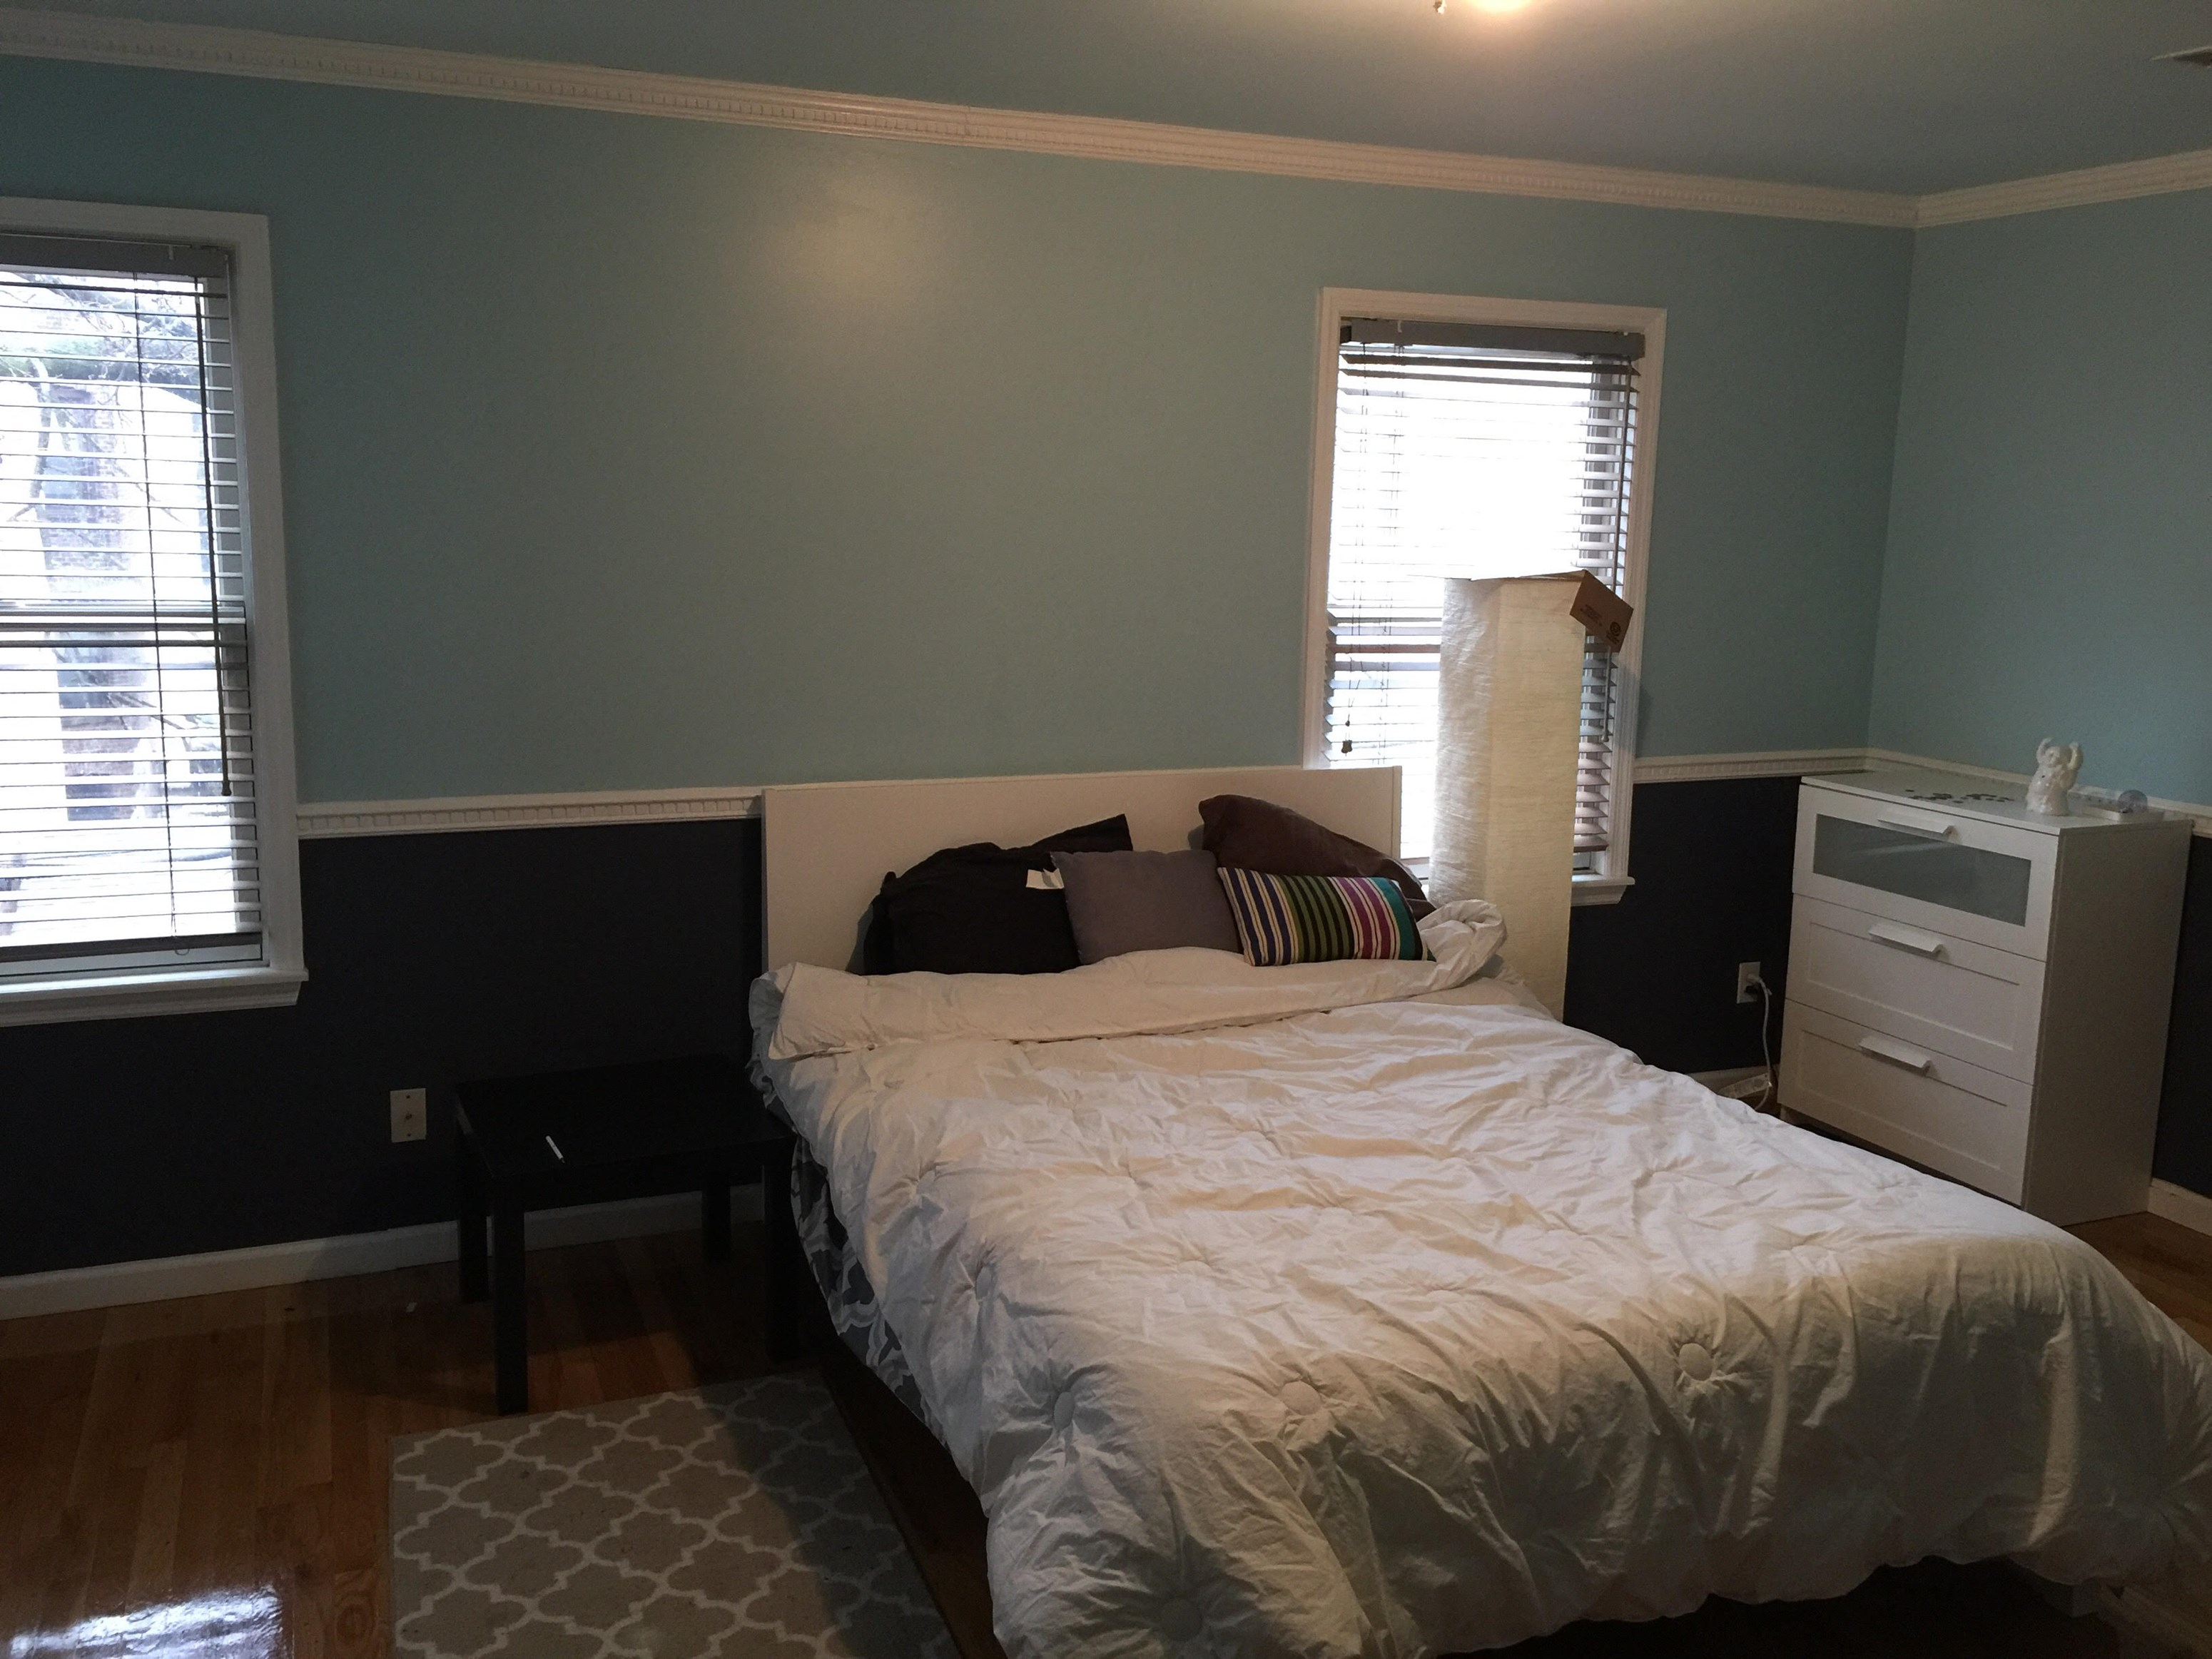 Single private master bedroom available for rent west side ave jersey city nj from jan 18 2017 Master bedroom for rent escondido